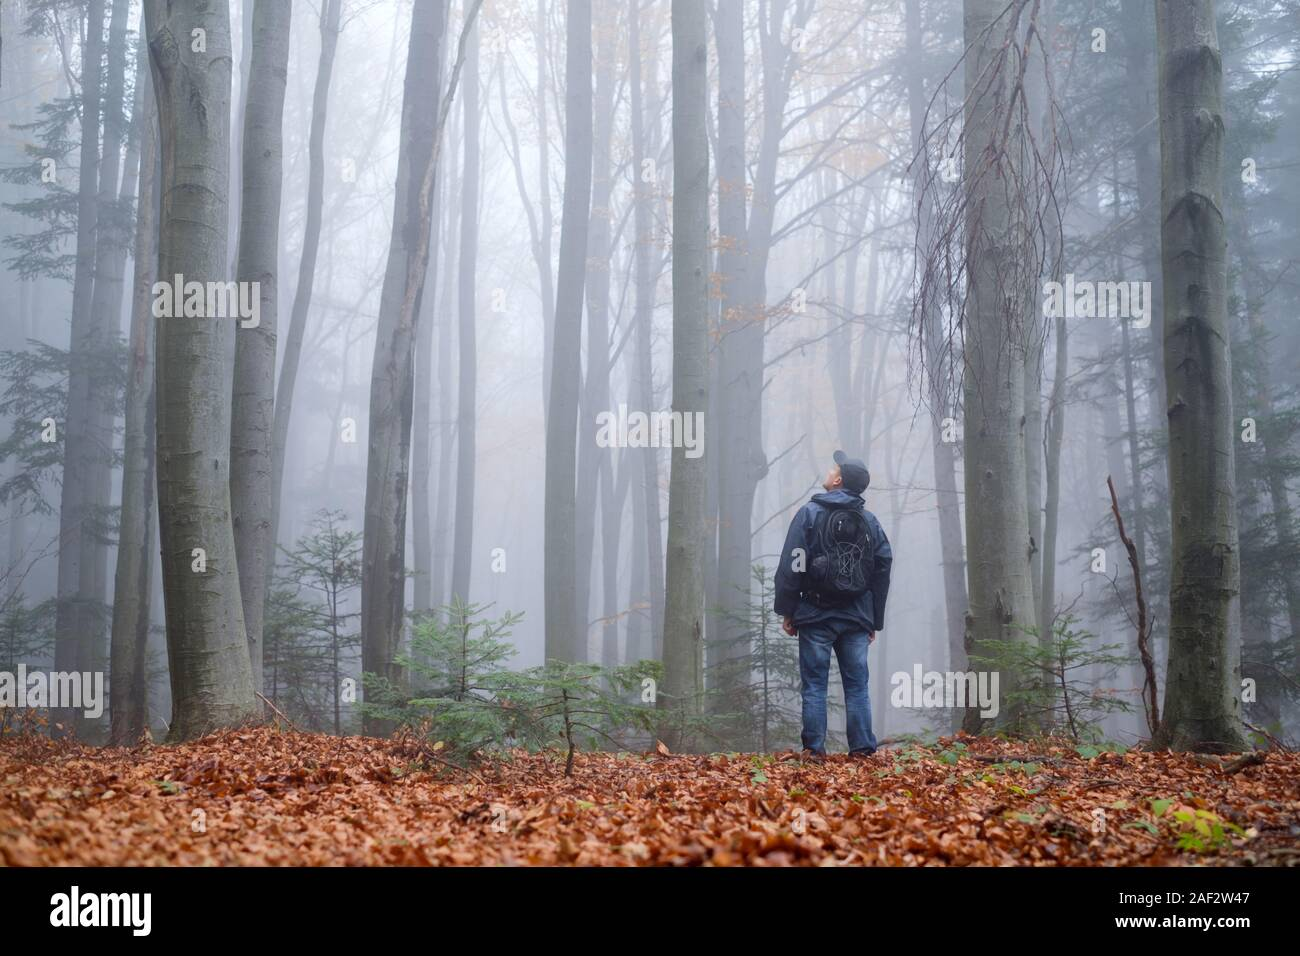 Misty Forest And Man High Resolution Stock Photography And Images Alamy